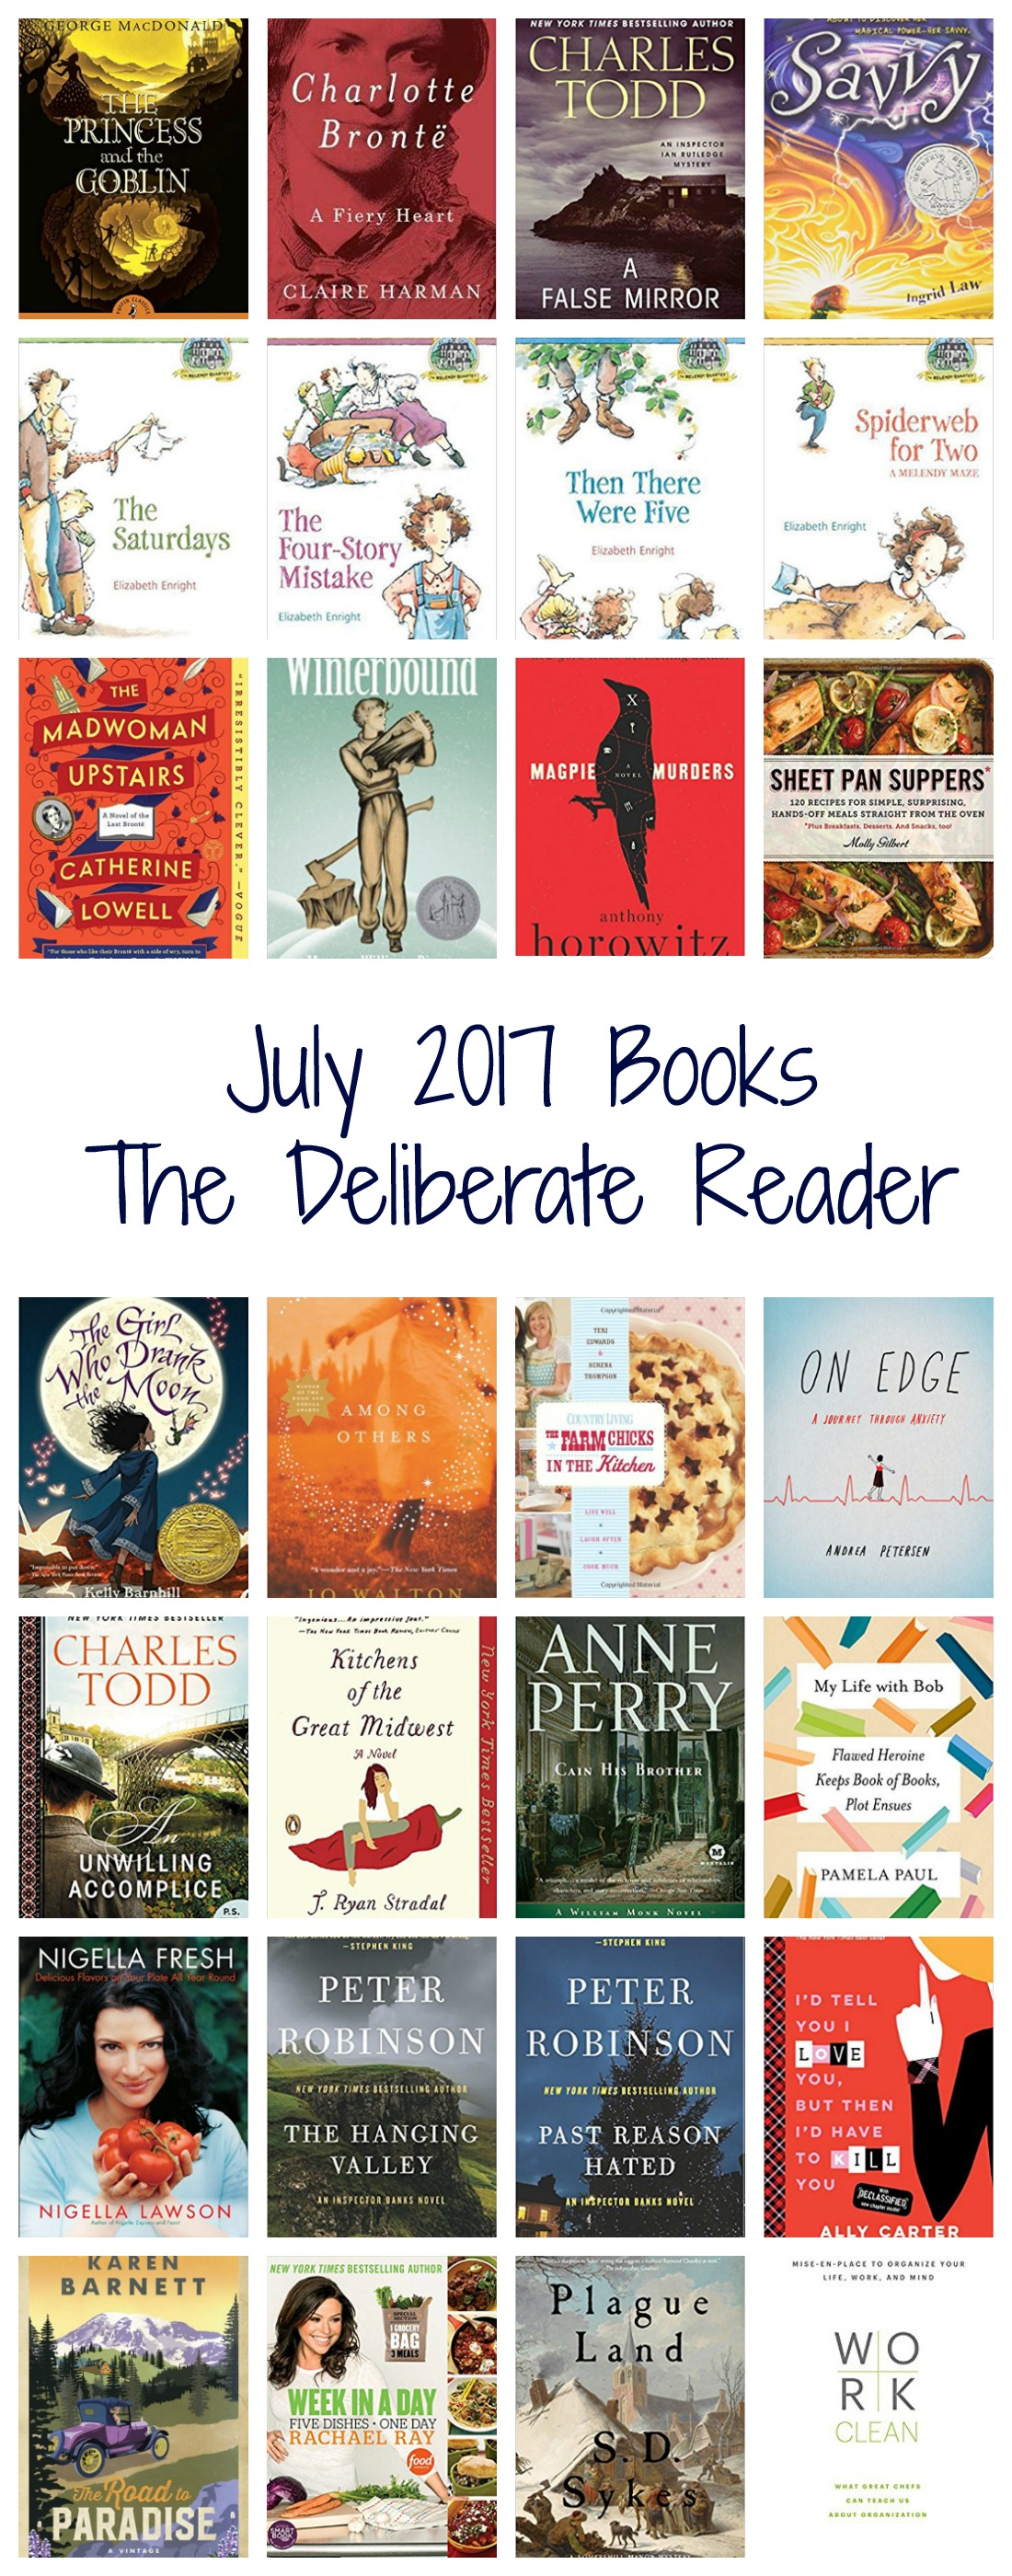 Books Read in July 2017